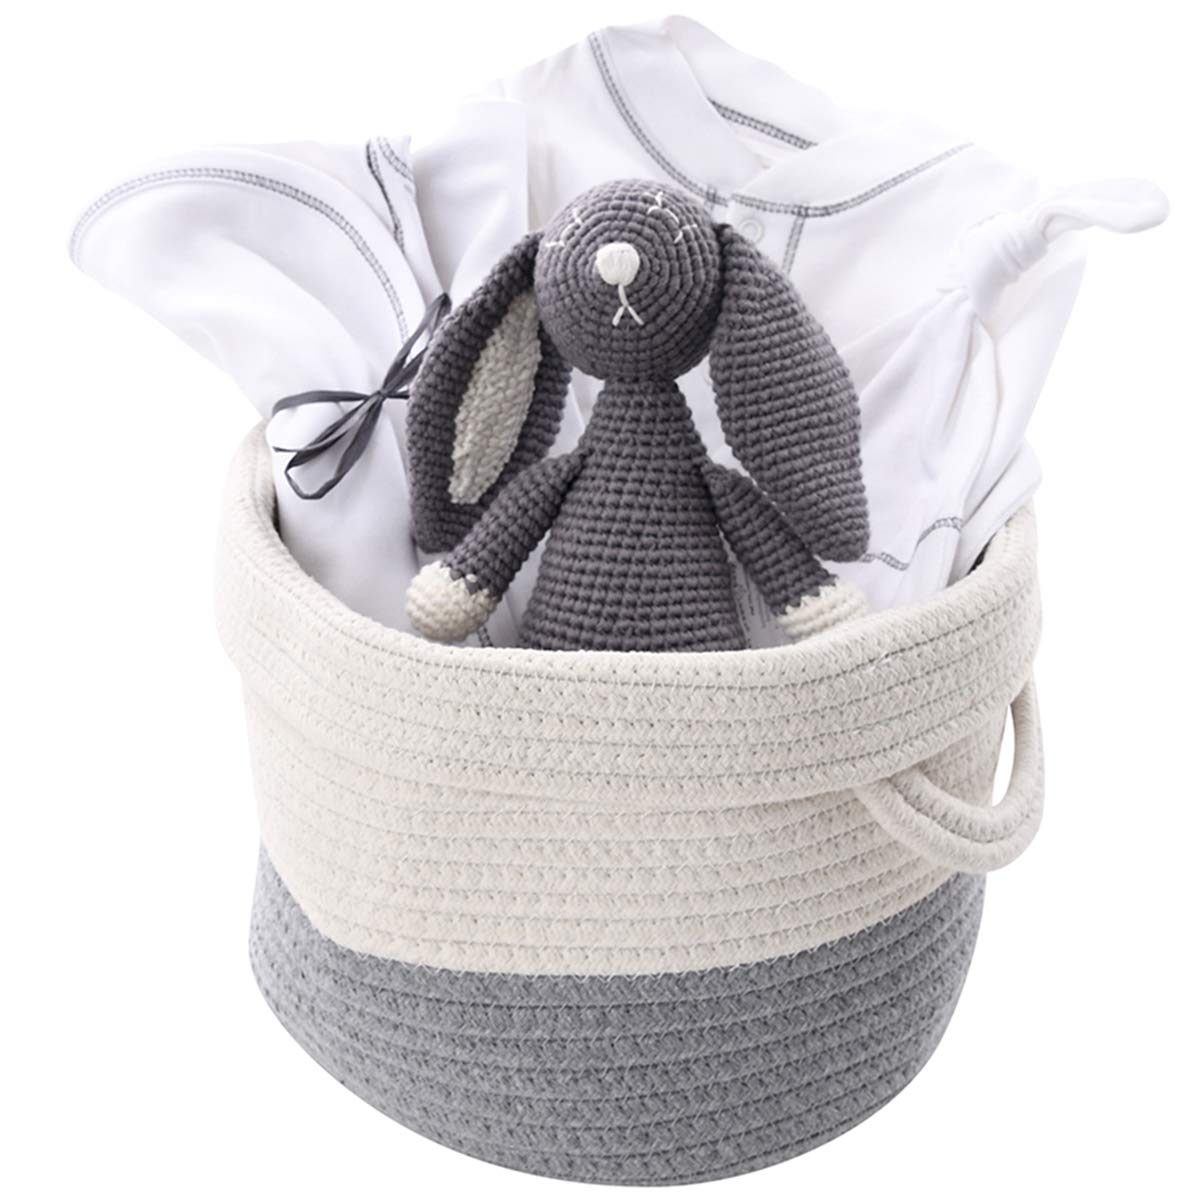 Unisex Organic Baby Gift Basket - Gray Bunny Layette in Cotton Tote